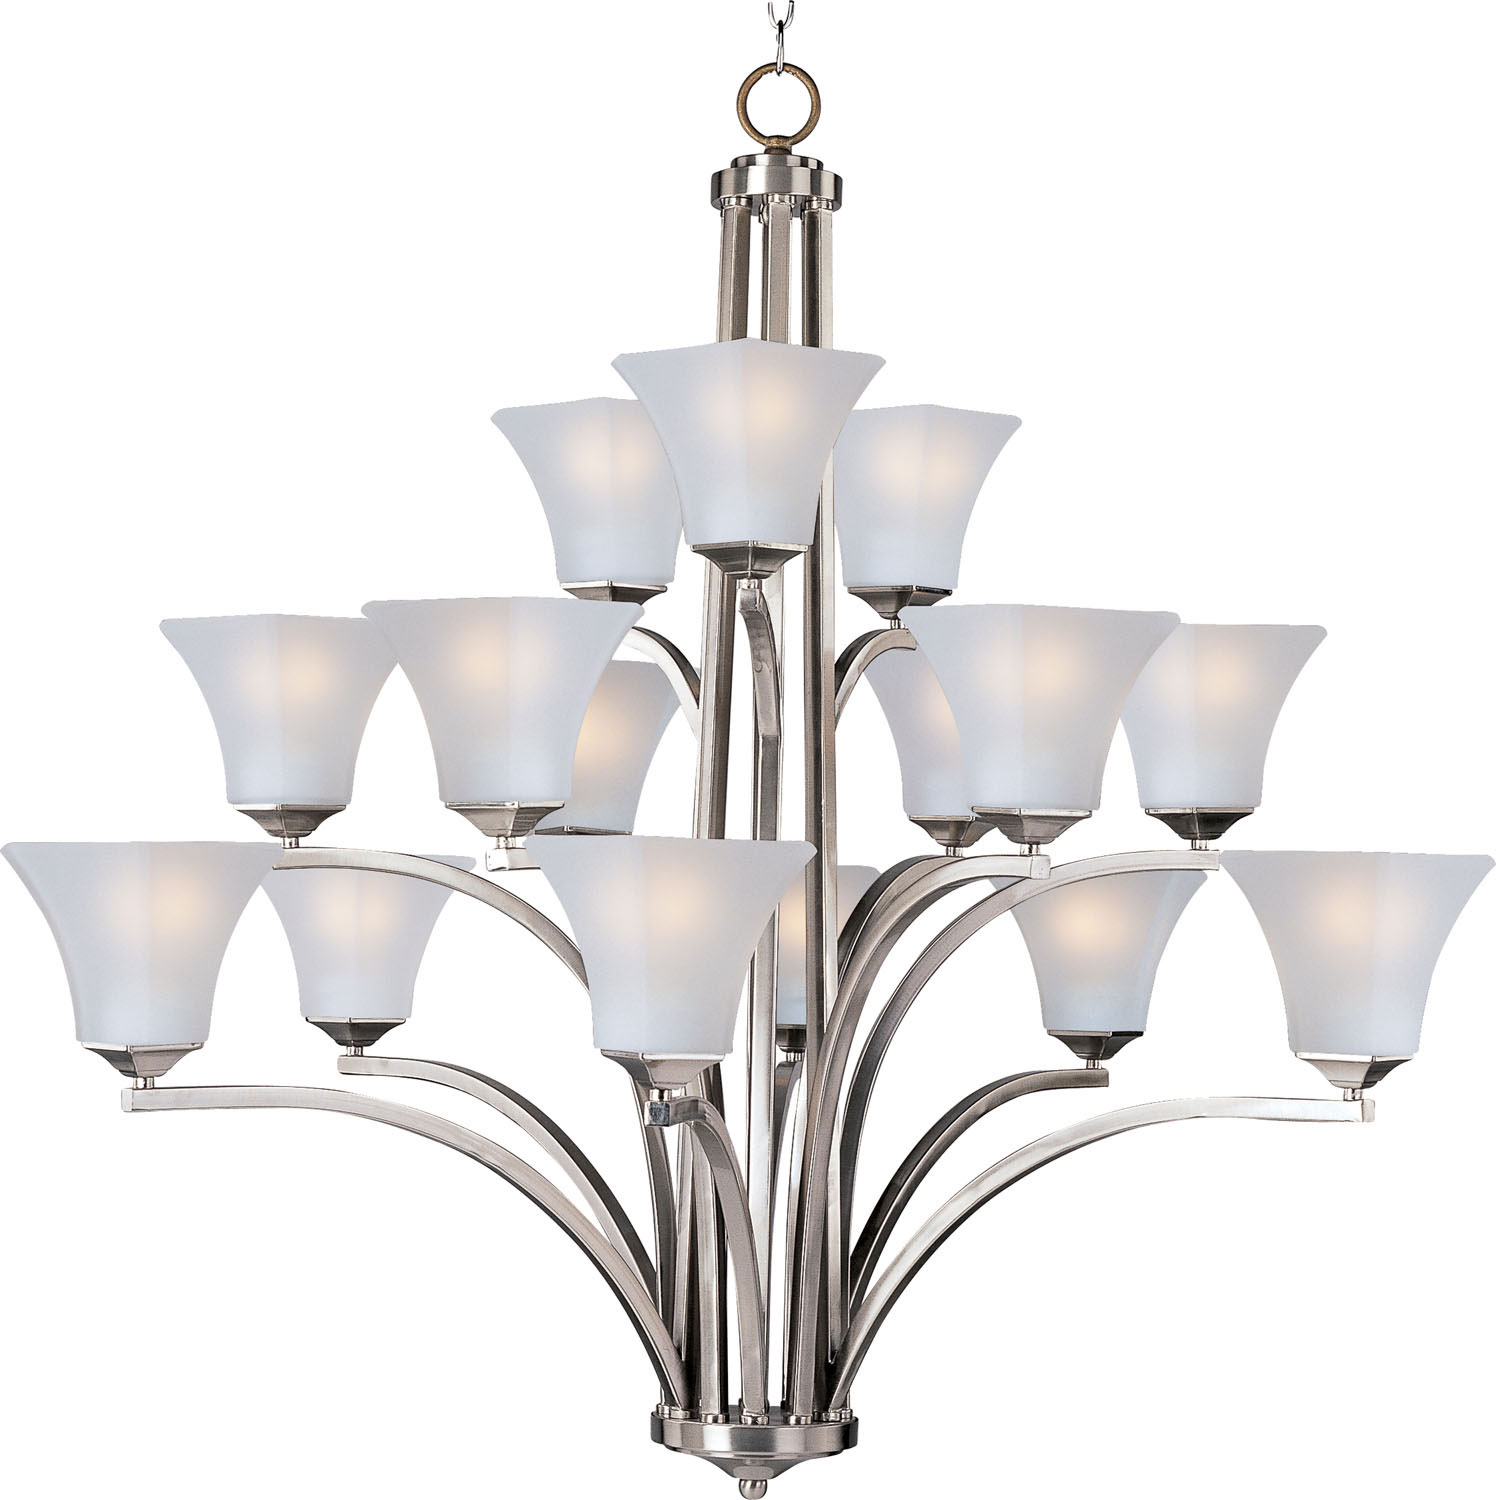 15 Light Chandelier from the Aurora collection by Maxim 20097FTSN